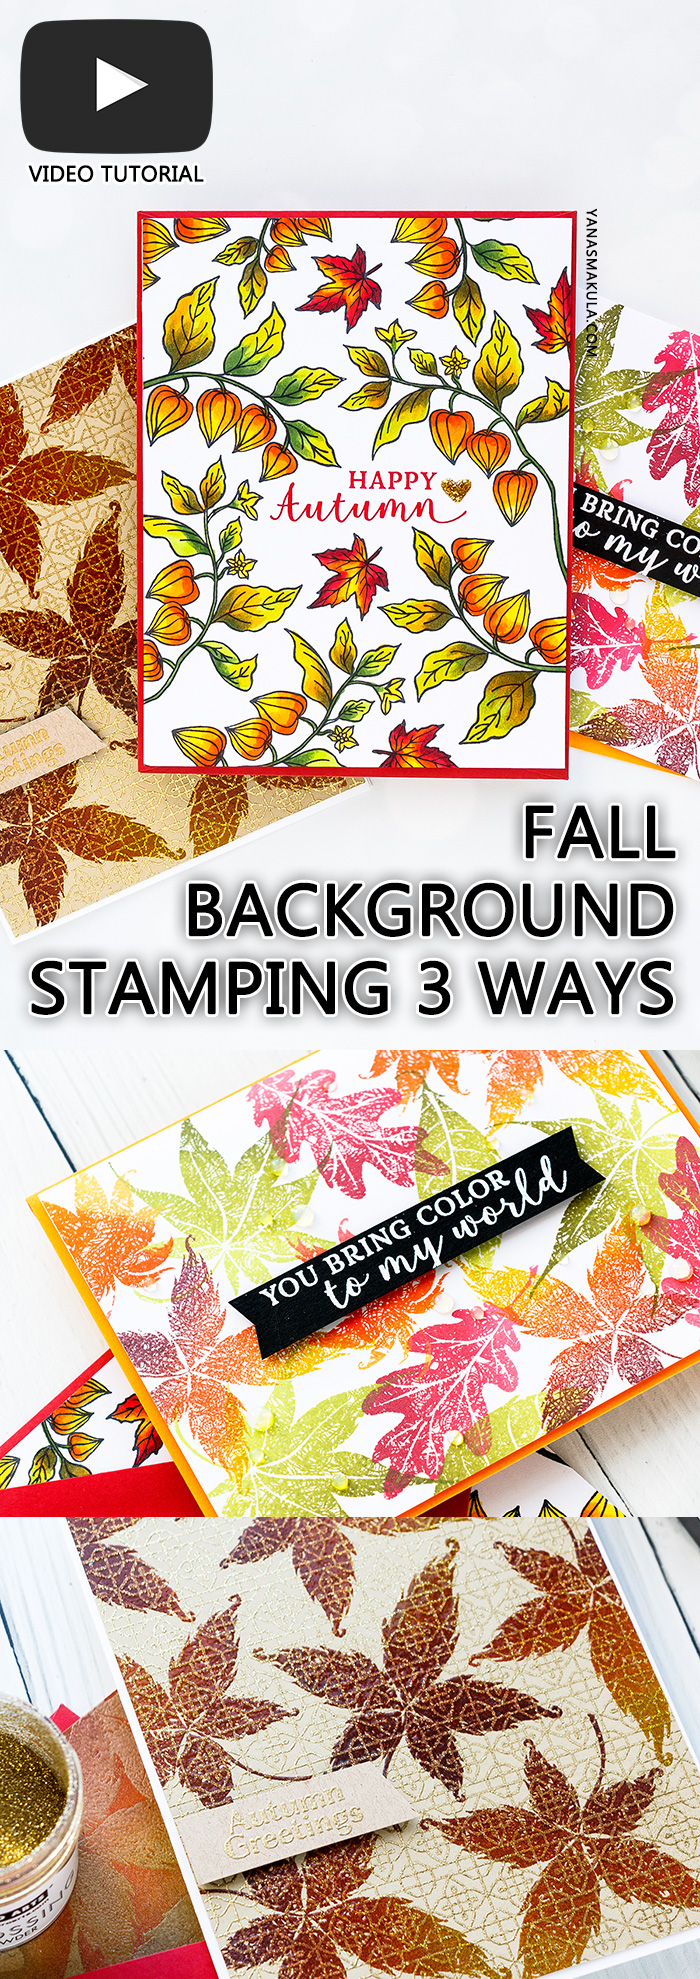 Autumn & Fall Background Stamping Ideas & Techniques with Yana Smakula. Hero Arts   Fall Foliage Cards. September 2018 My Monthly Hero Kit. Video tutorial. #yscardmaking #heroarts #mymonthlyhero #cardmaking #fallcard #fallcardmaking #autumncard #heroartskit #cardkit #handmadecard